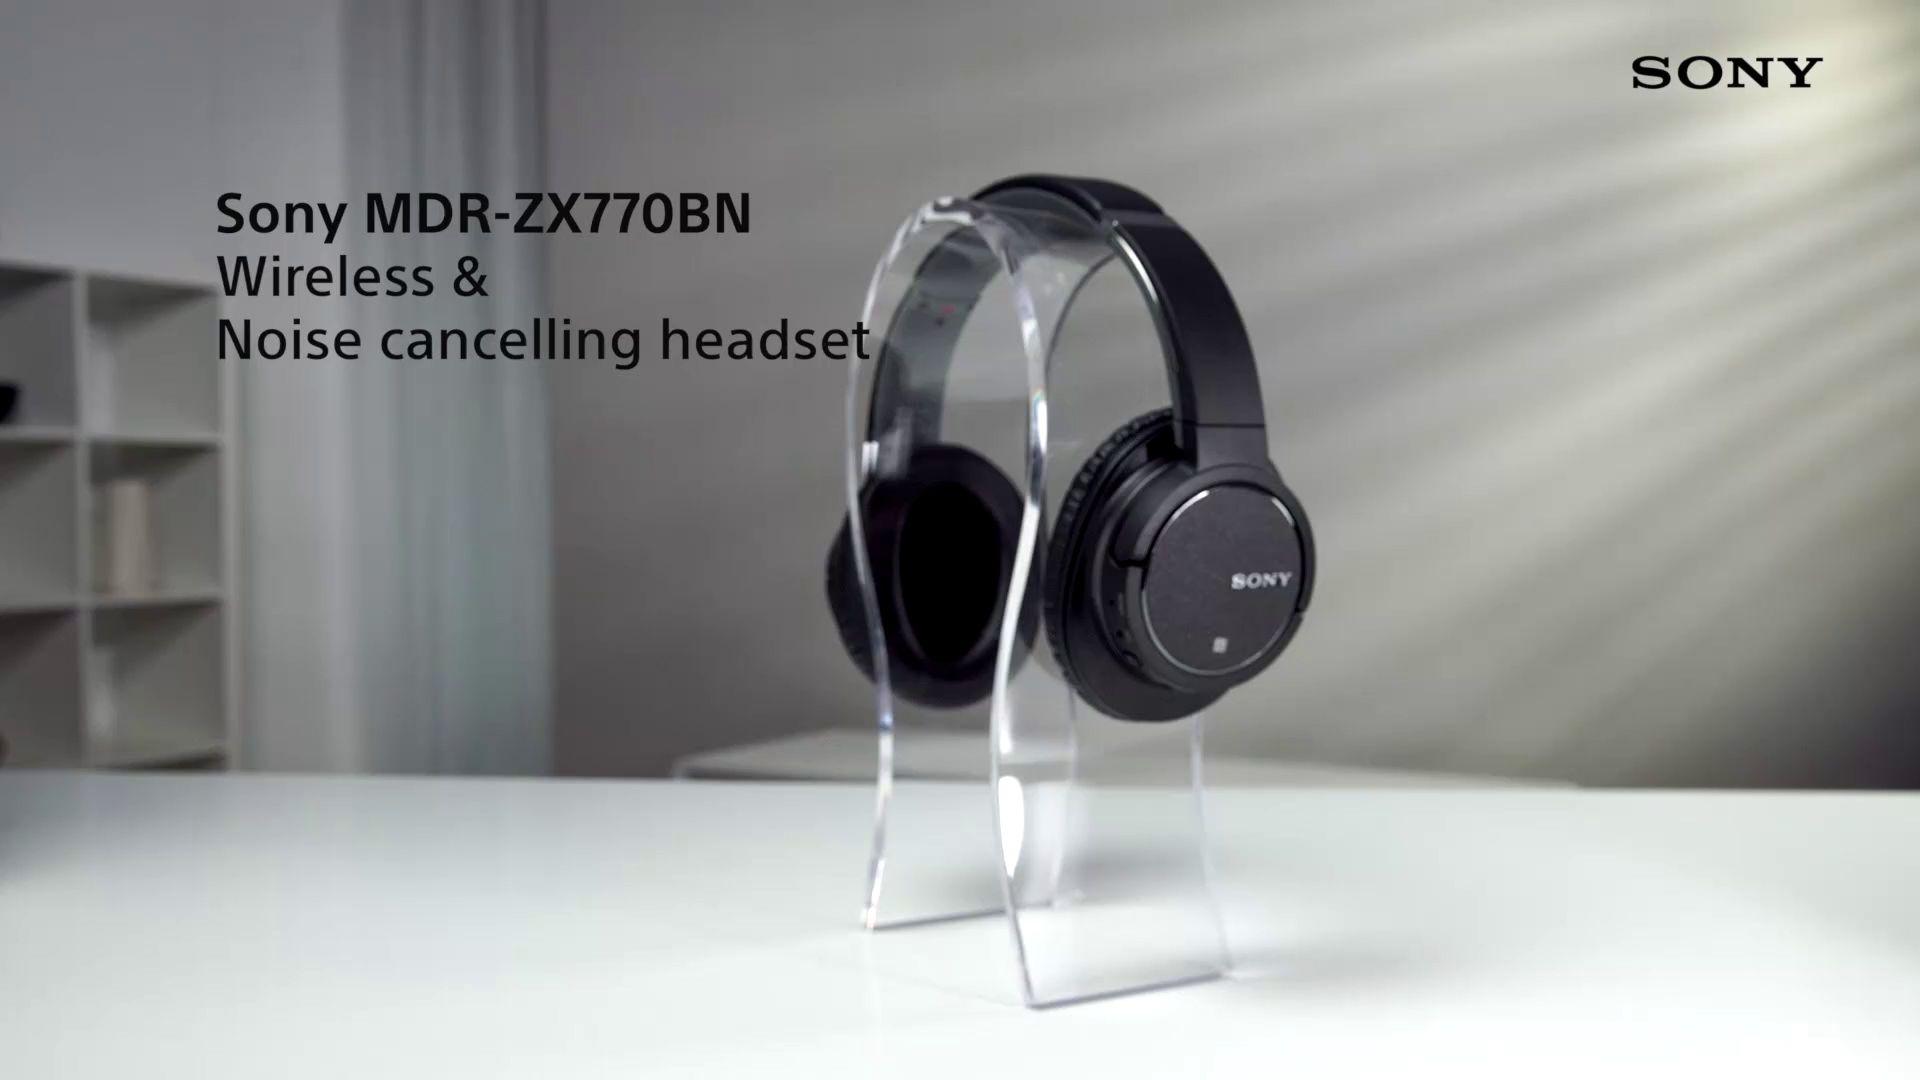 dc2e7729a49 Sony MDR-ZX770BN Noise Cancelling Bluetooth Over-Ear Headphones with Mic/Remote  at John Lewis & Partners